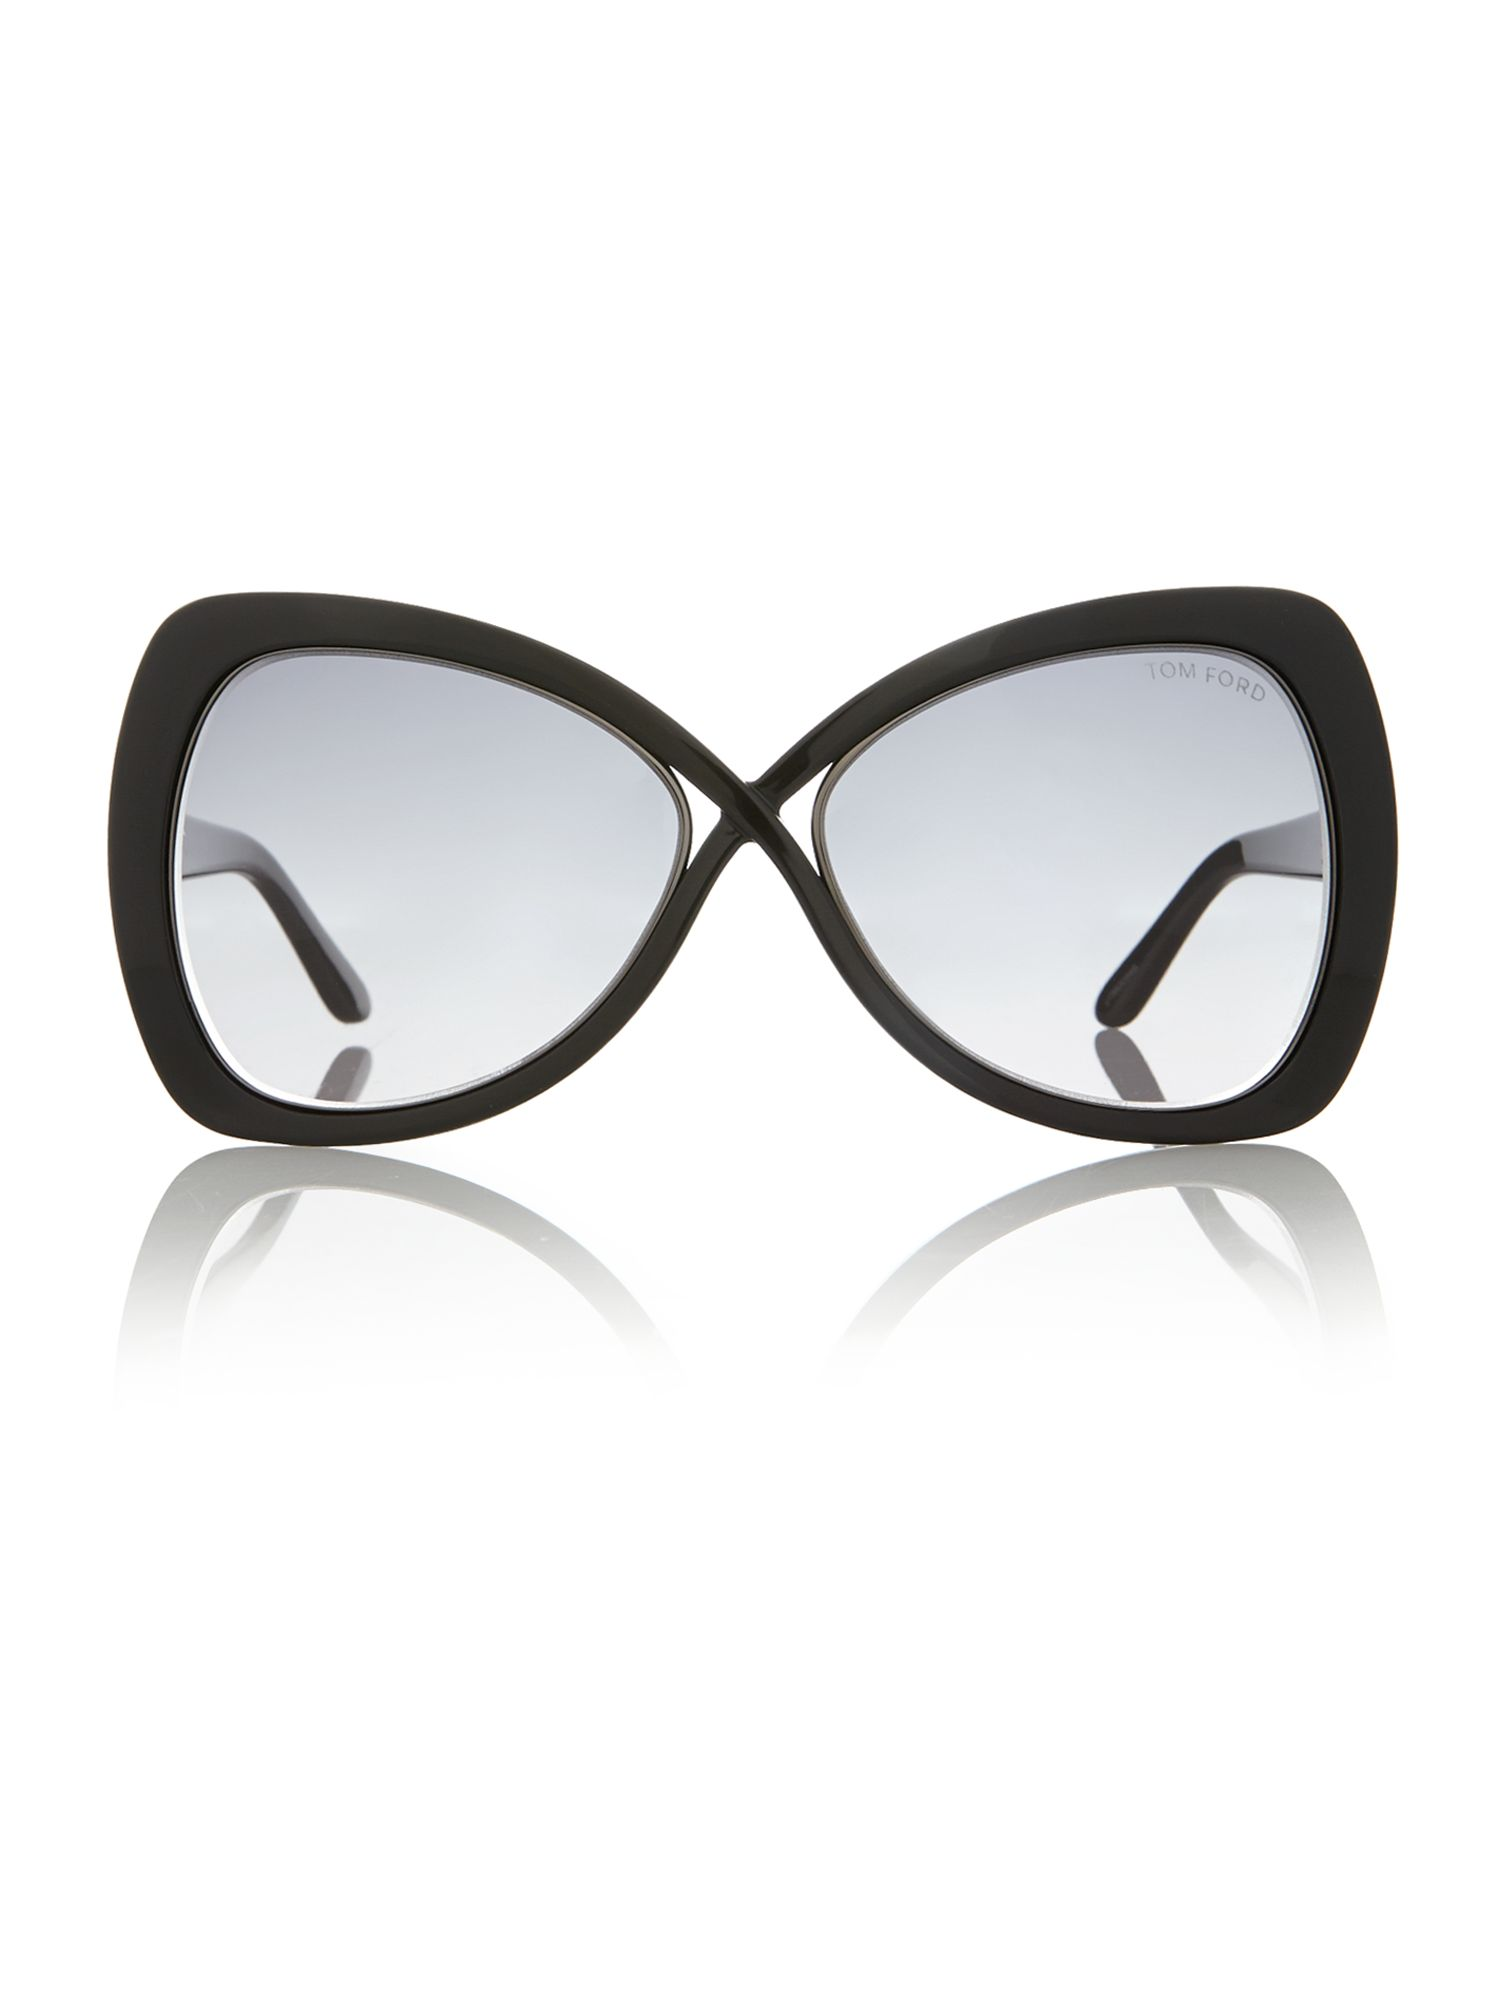 Ladies FT0277 black jade sunglasses